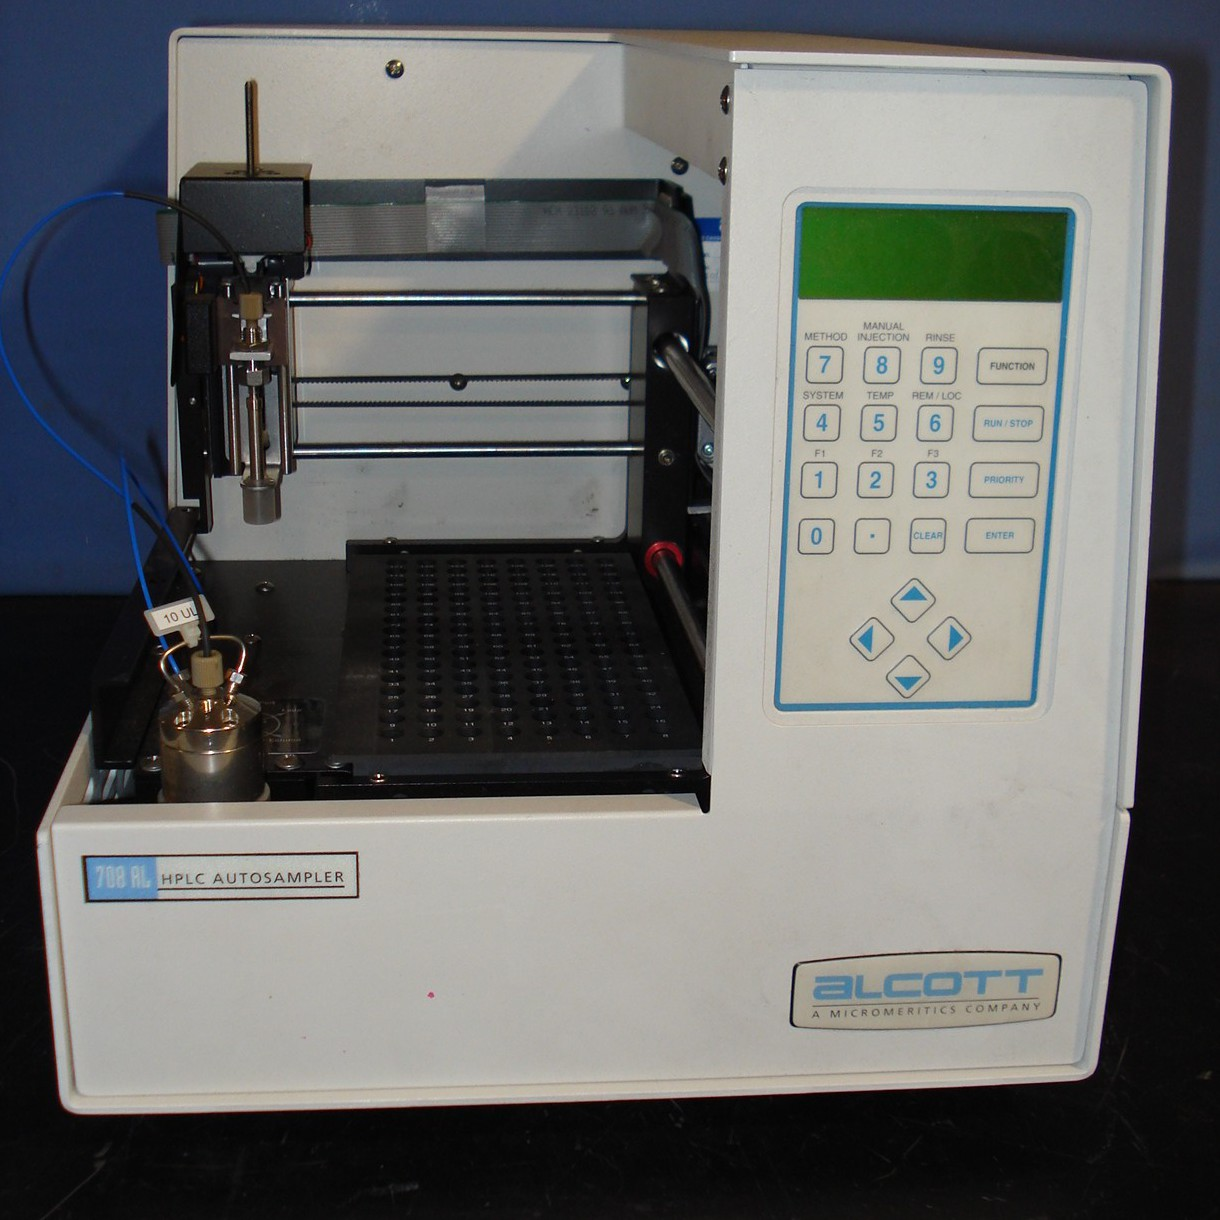 708AL HPLC Autosampler Positive Displacement Name